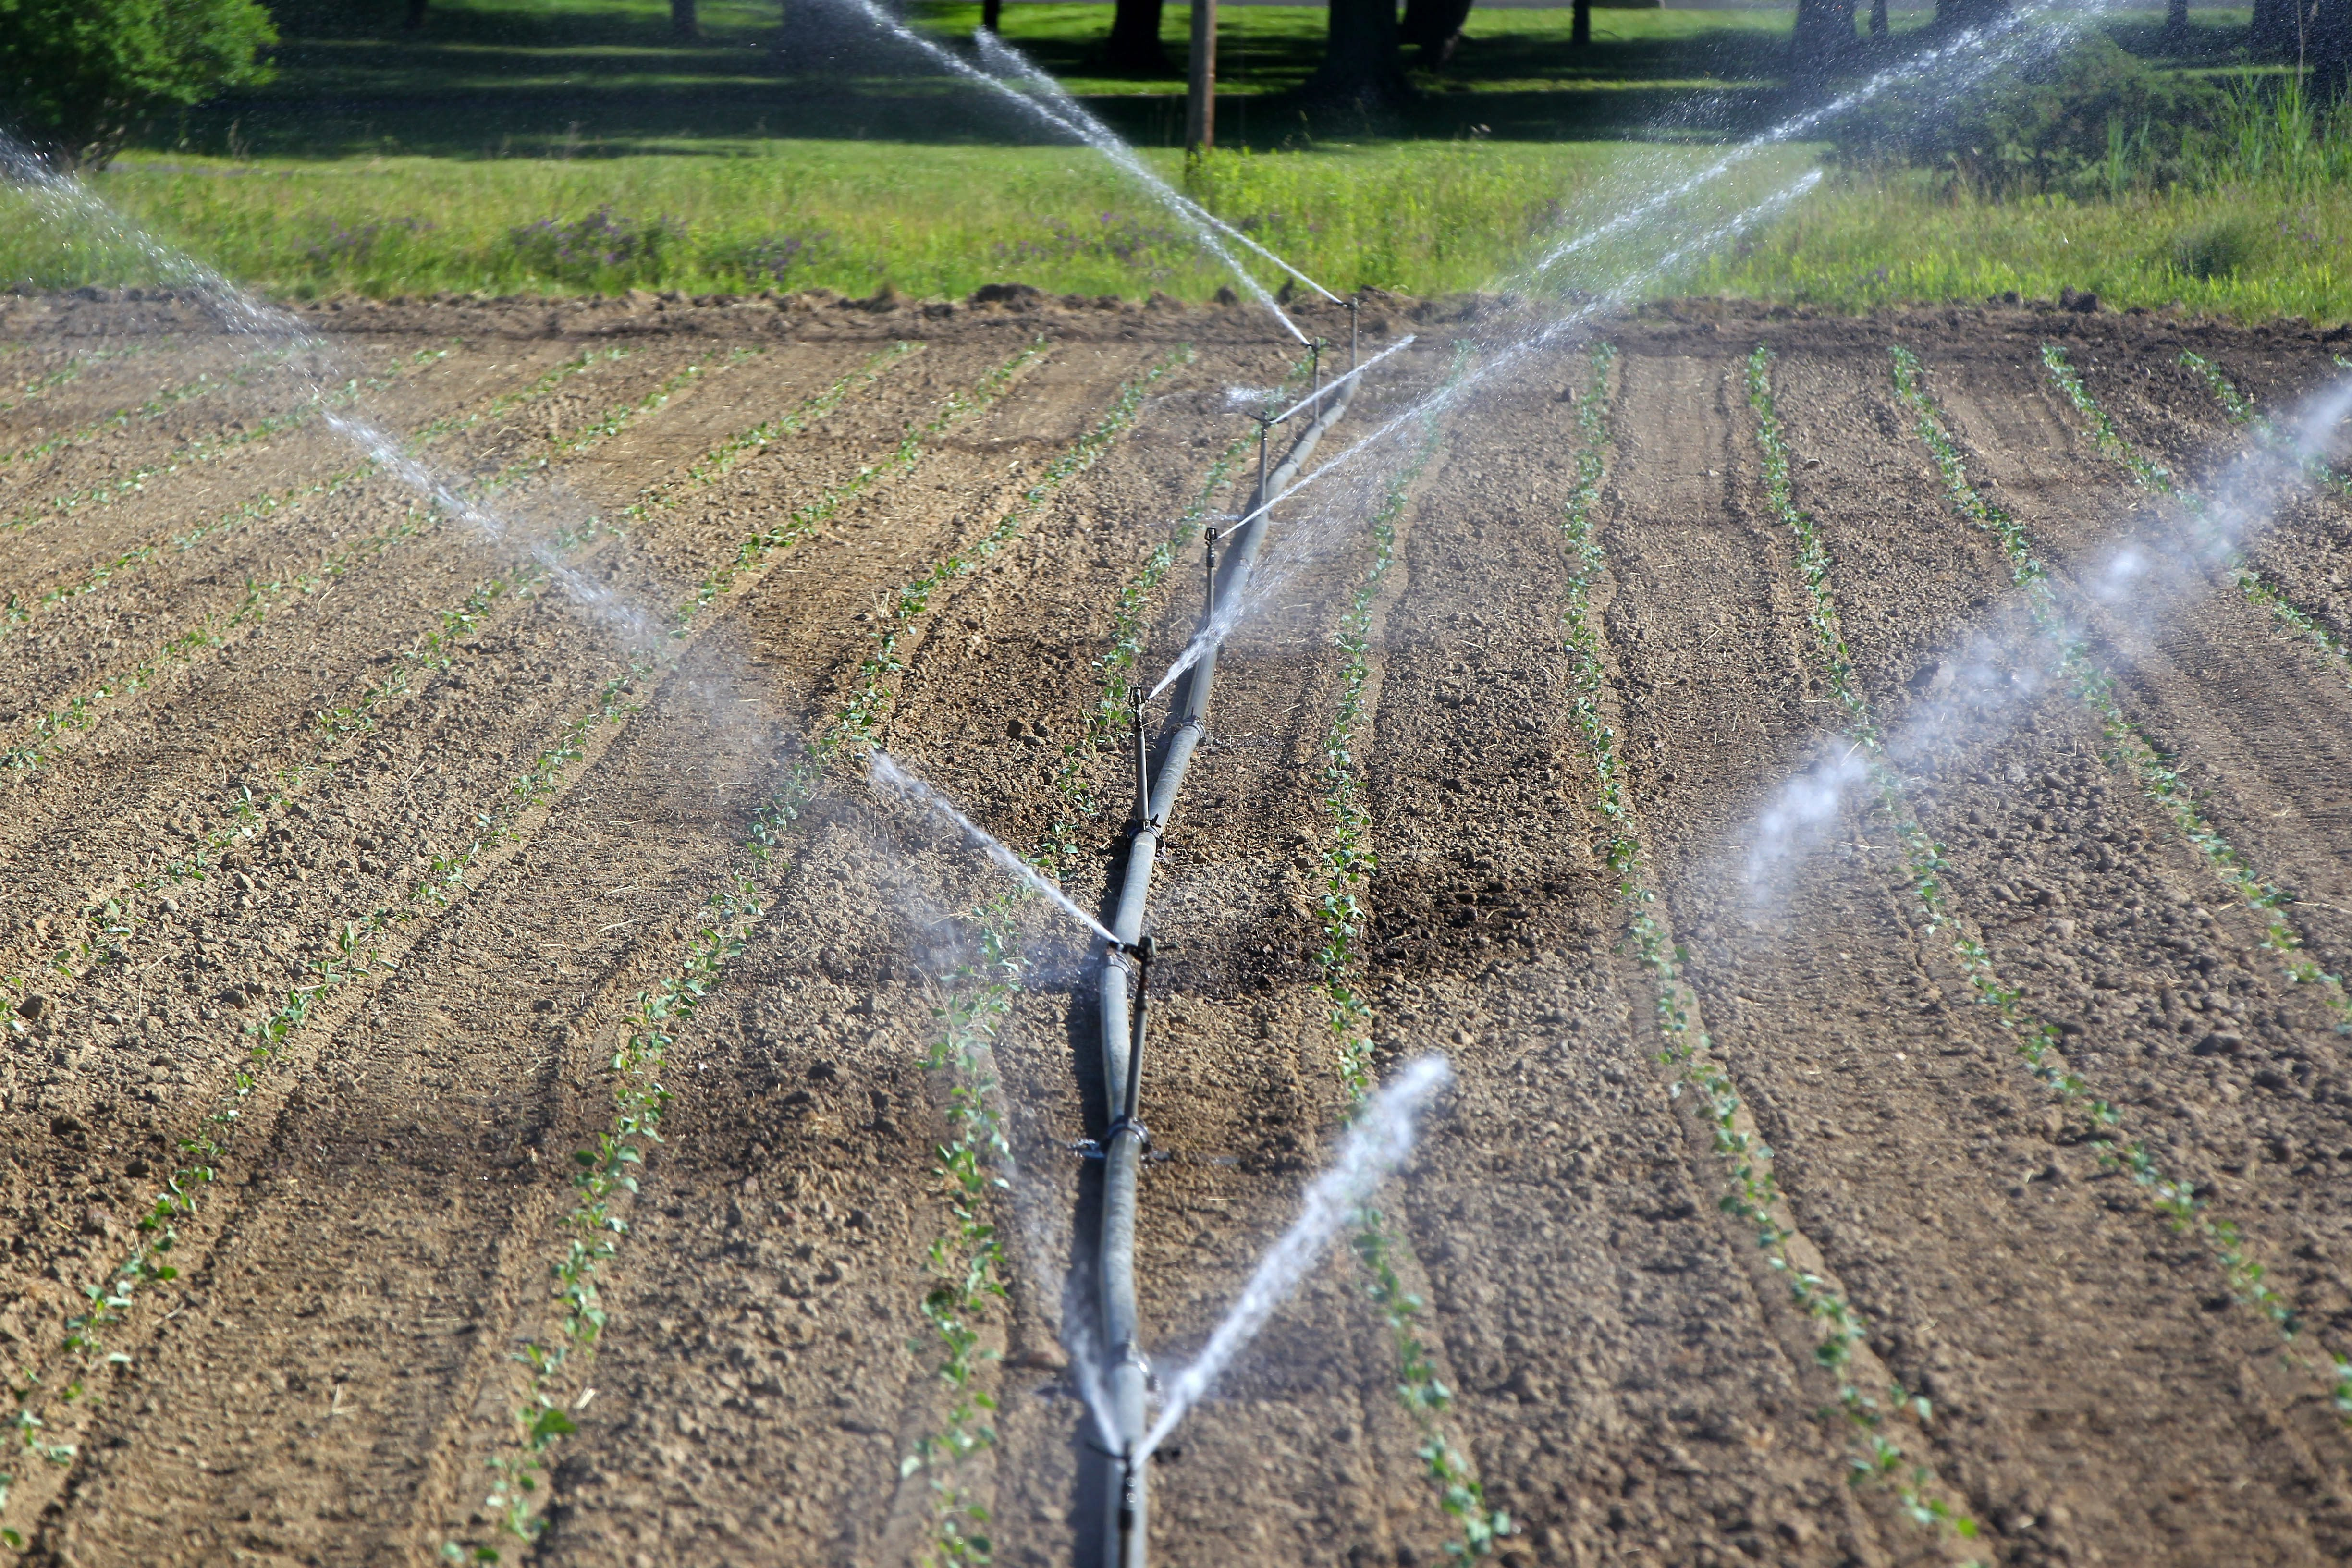 Plants get some much-needed water at Draudt's Farm in Hamburg earlier this month. (Mark Mulville/News file photo)